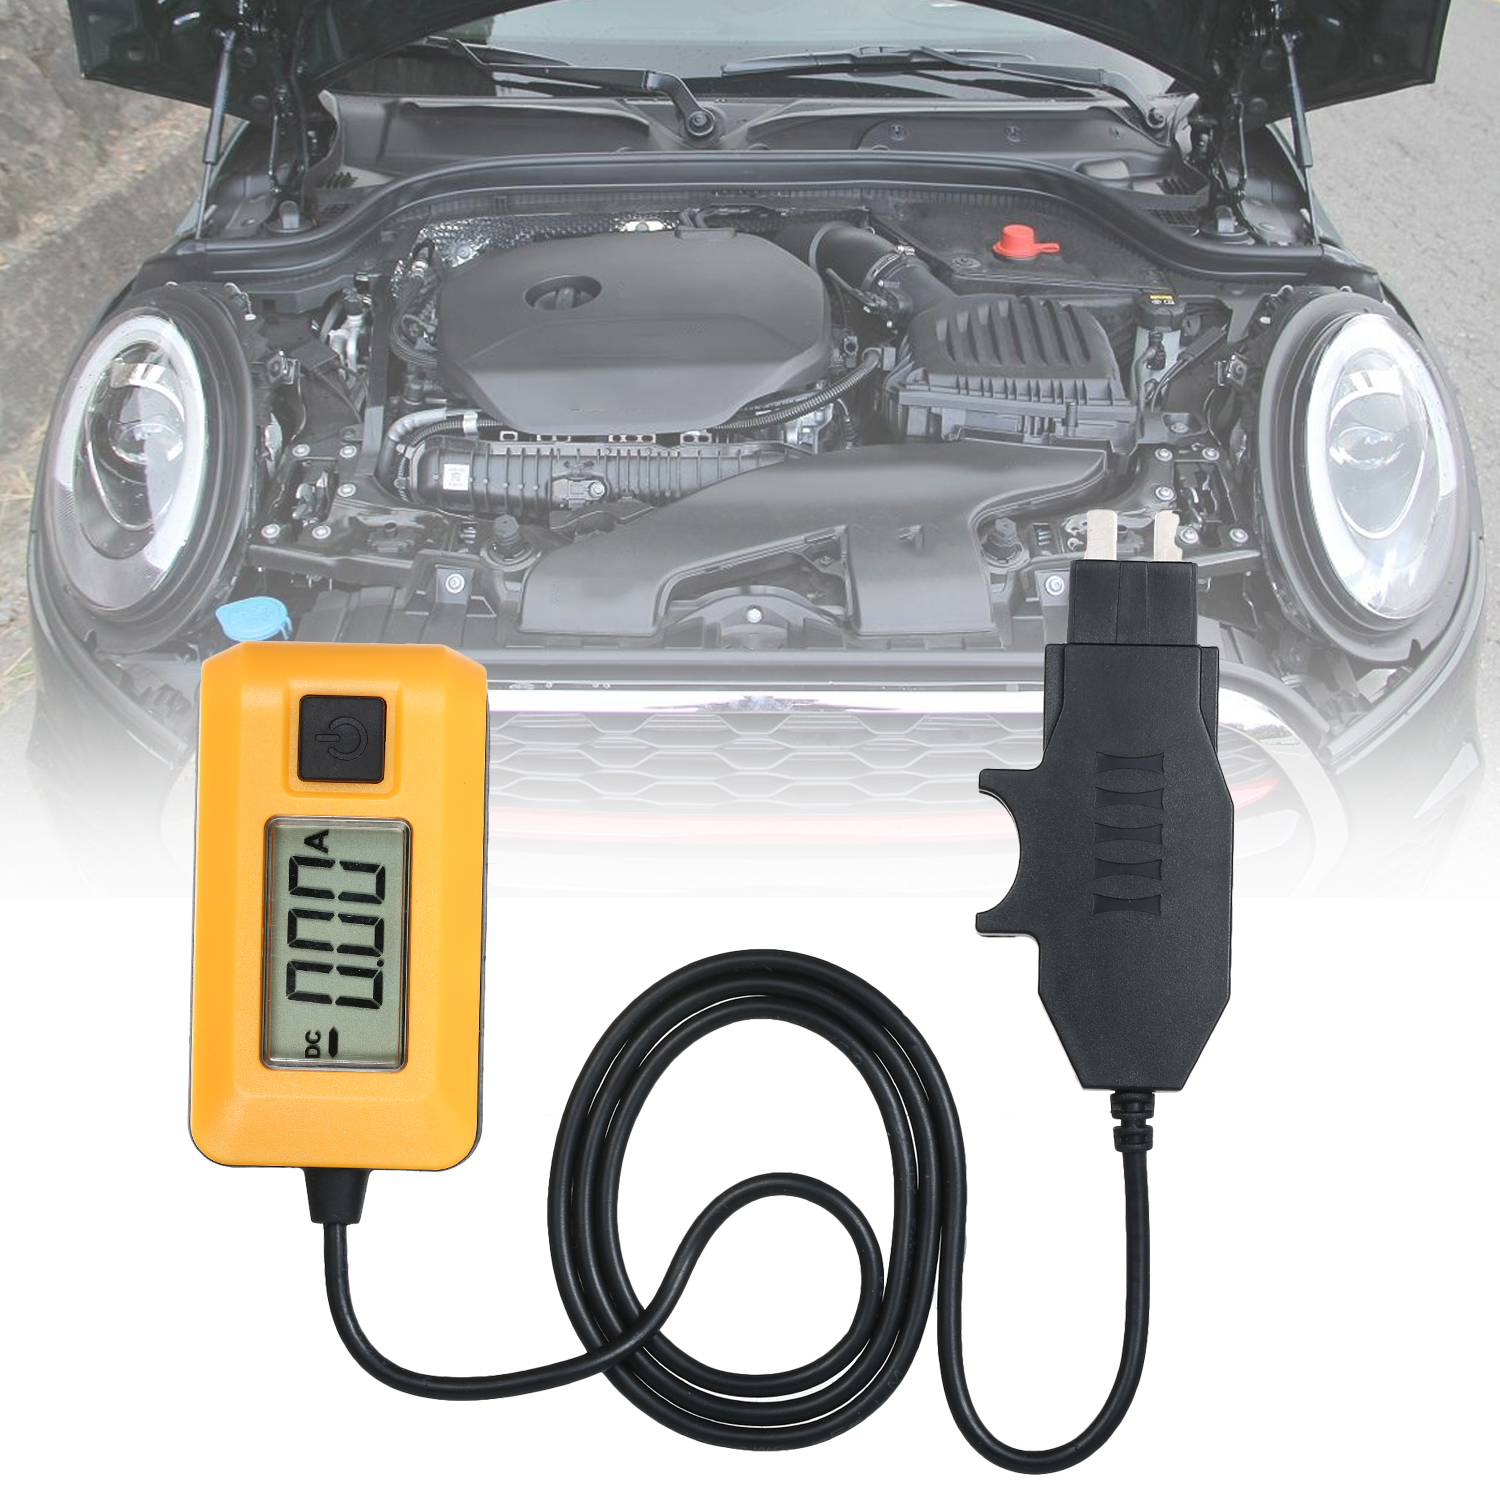 KKmoon Automotive Current Tester AE150 Fuse Tester Fault Finding with LCD Display Multifunction Car Electrical Circuit Diagnostic Tool